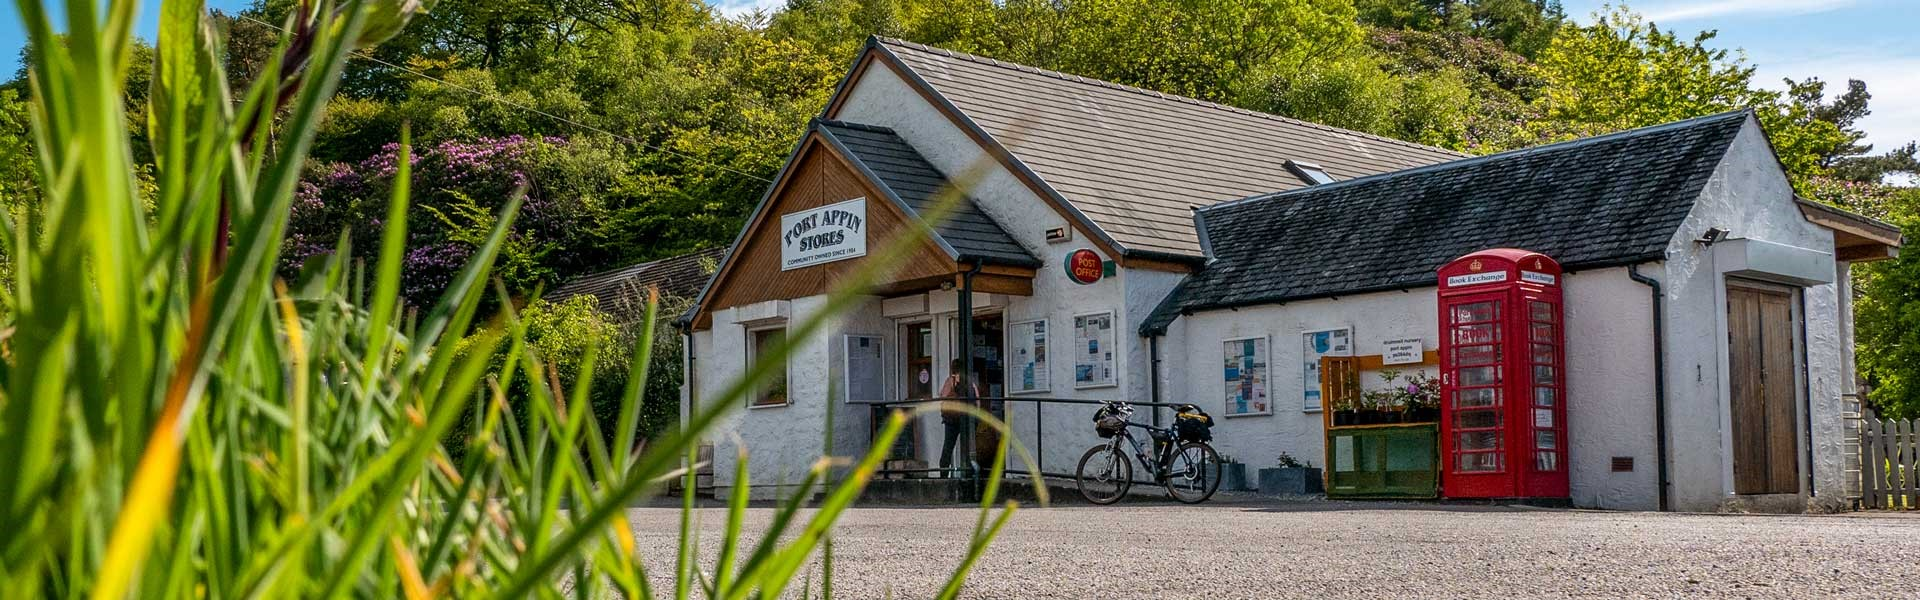 port appin stores